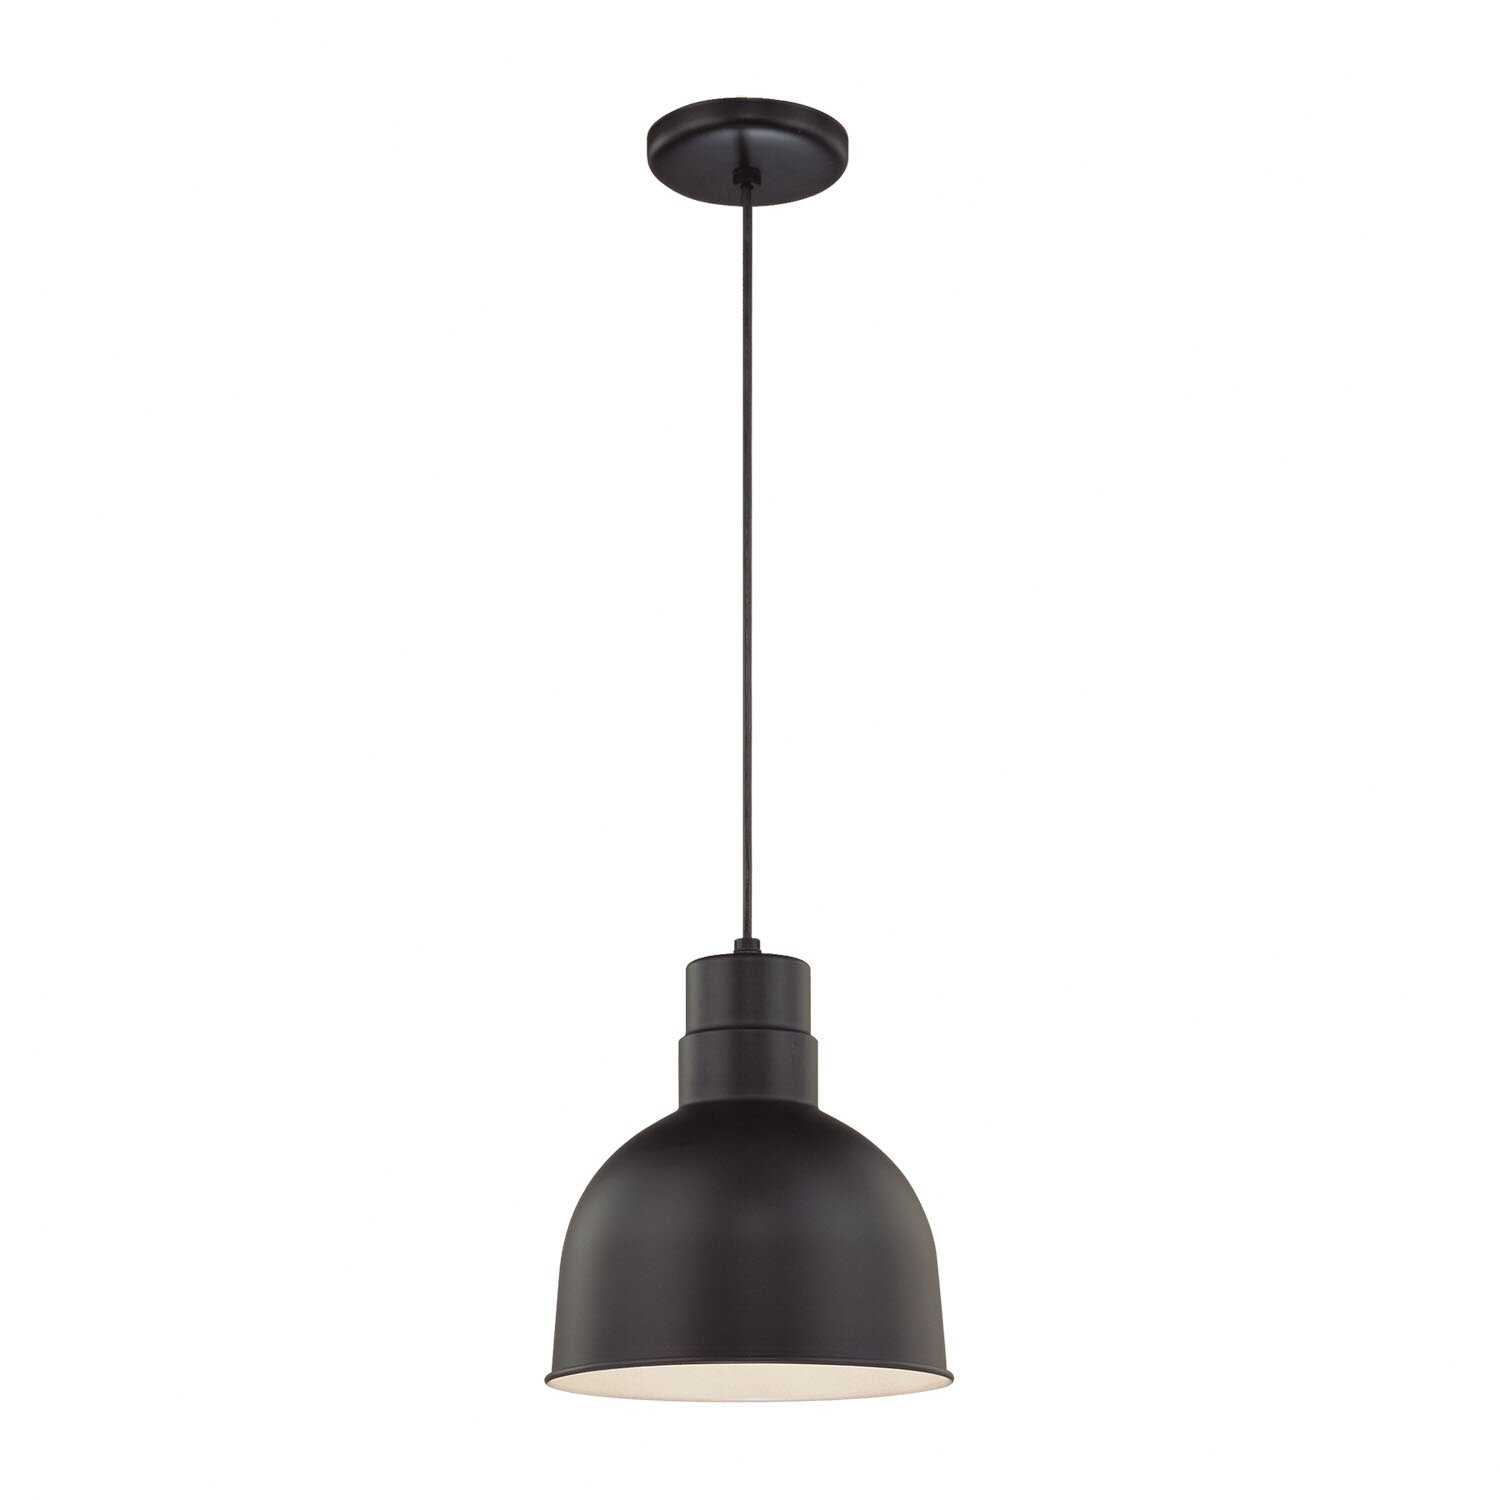 Wayfair Lights: Millennium Lighting R Series 1 Light Kitchen Pendant